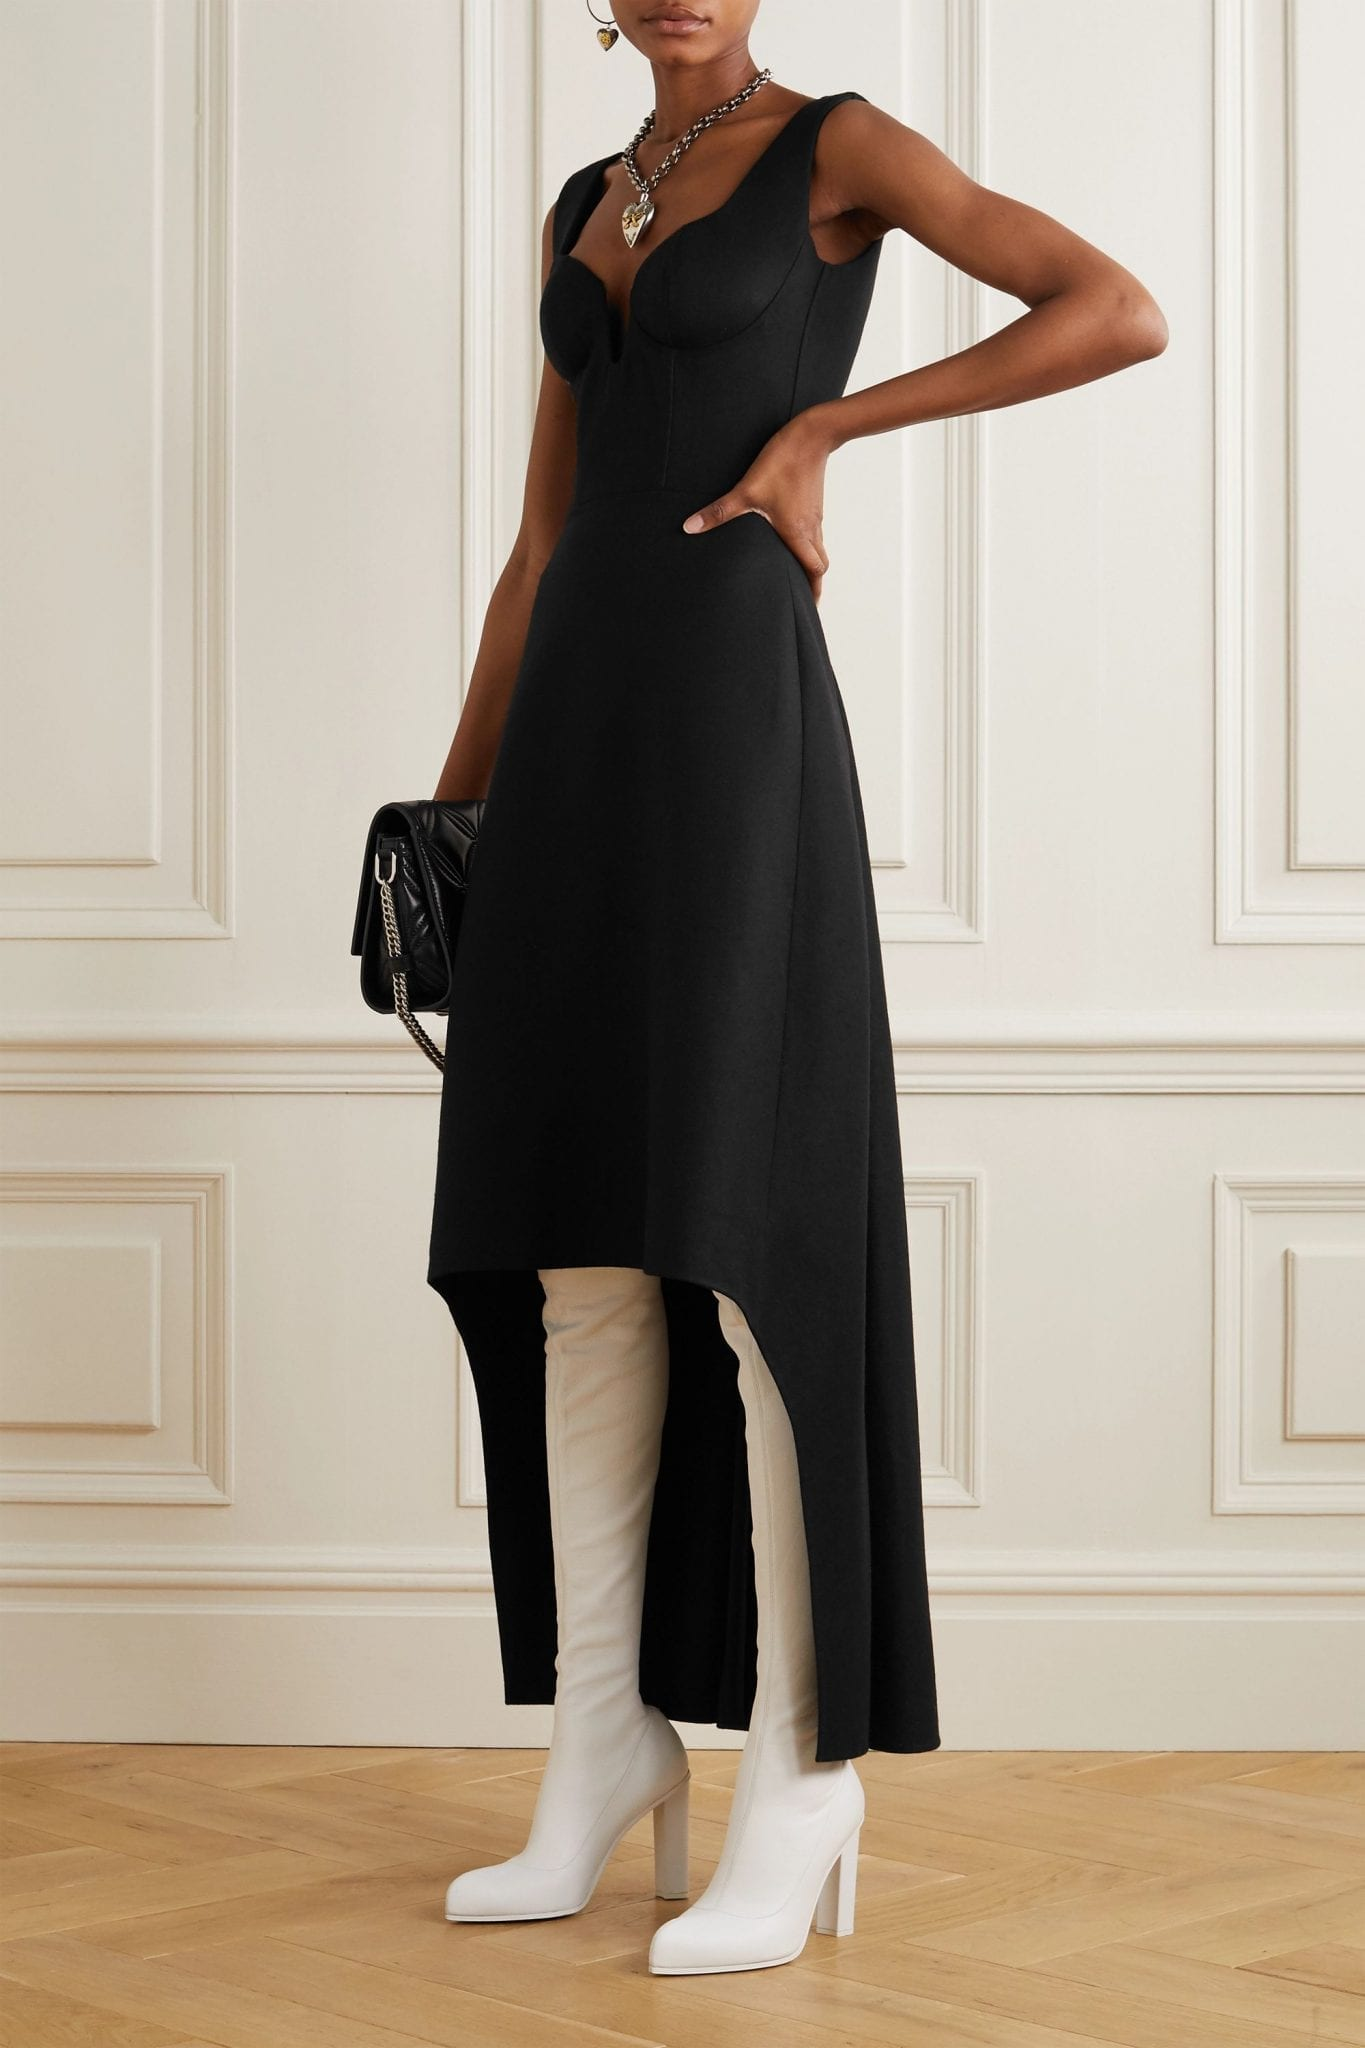 ALEXANDER MCQUEEN Asymmetric Wool Dress